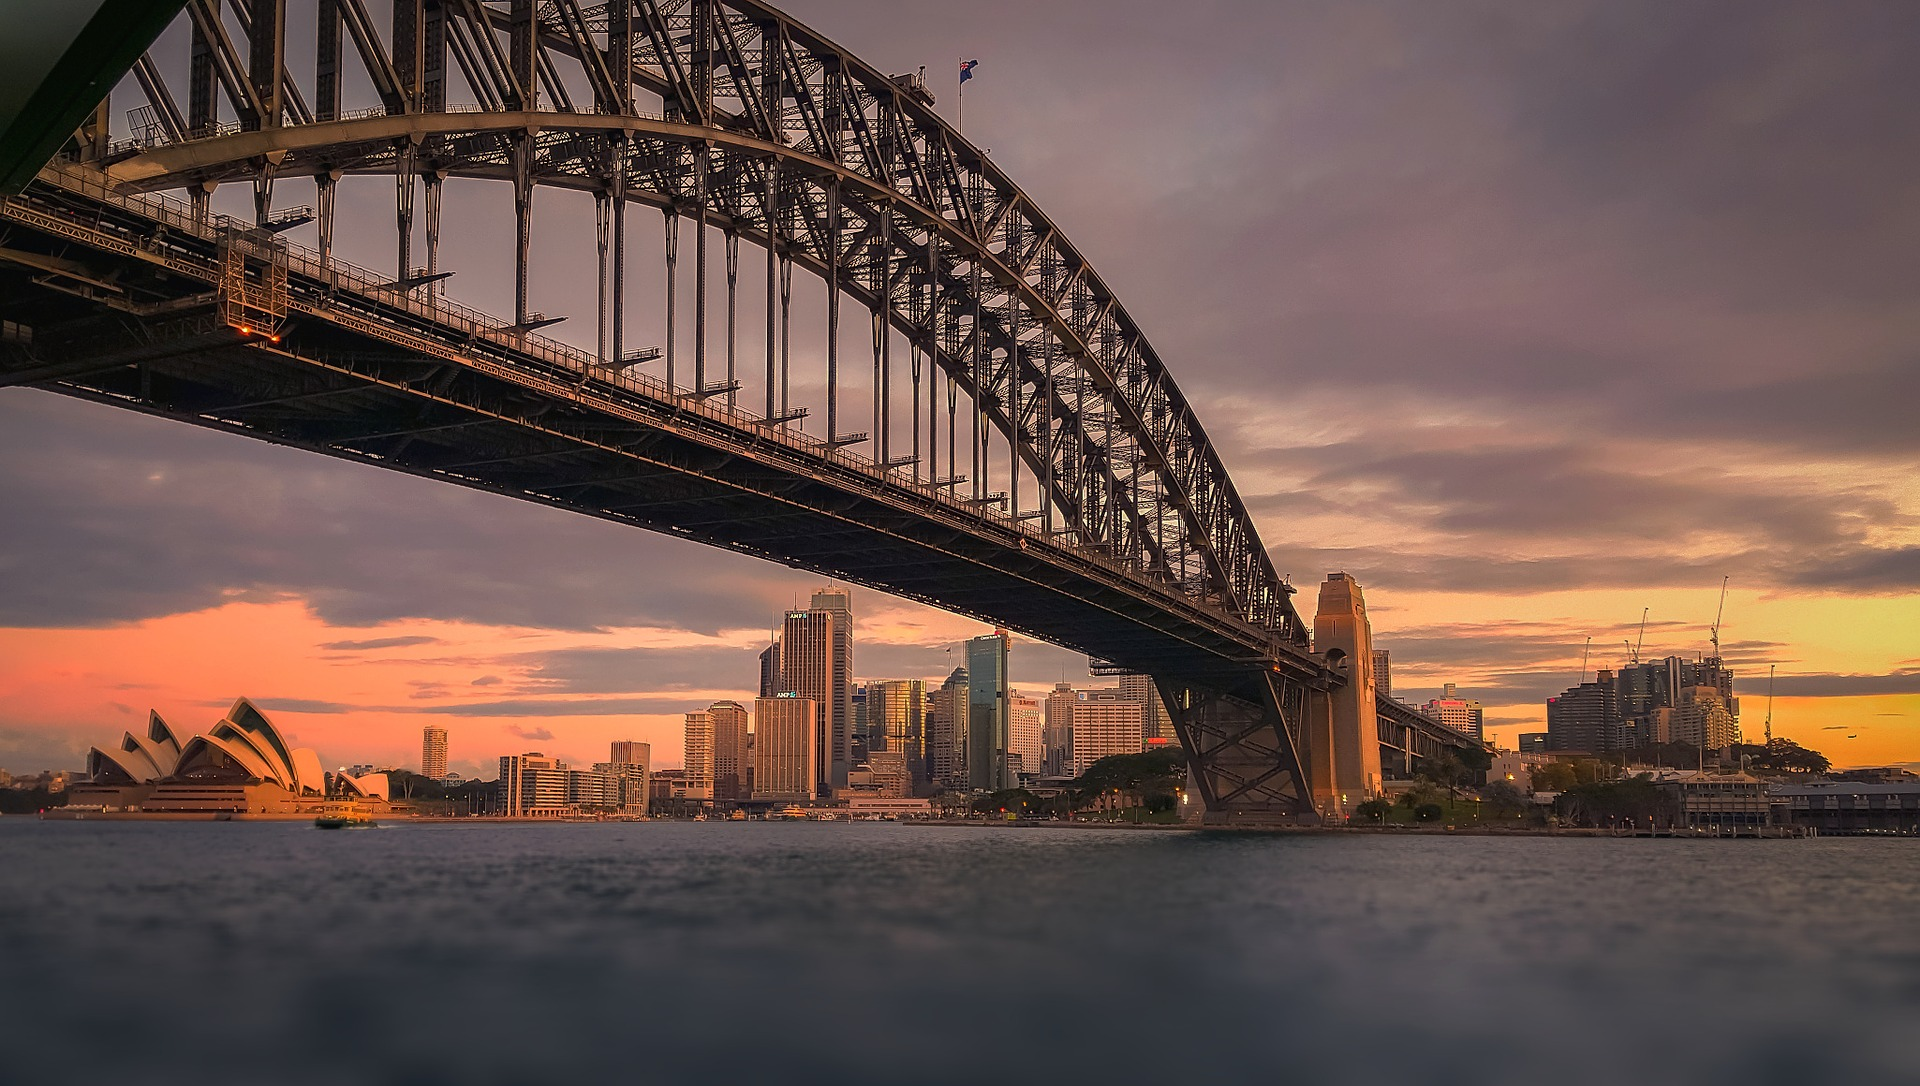 Sunset view of Sydney Harbour Bridge and Opera House in Australia